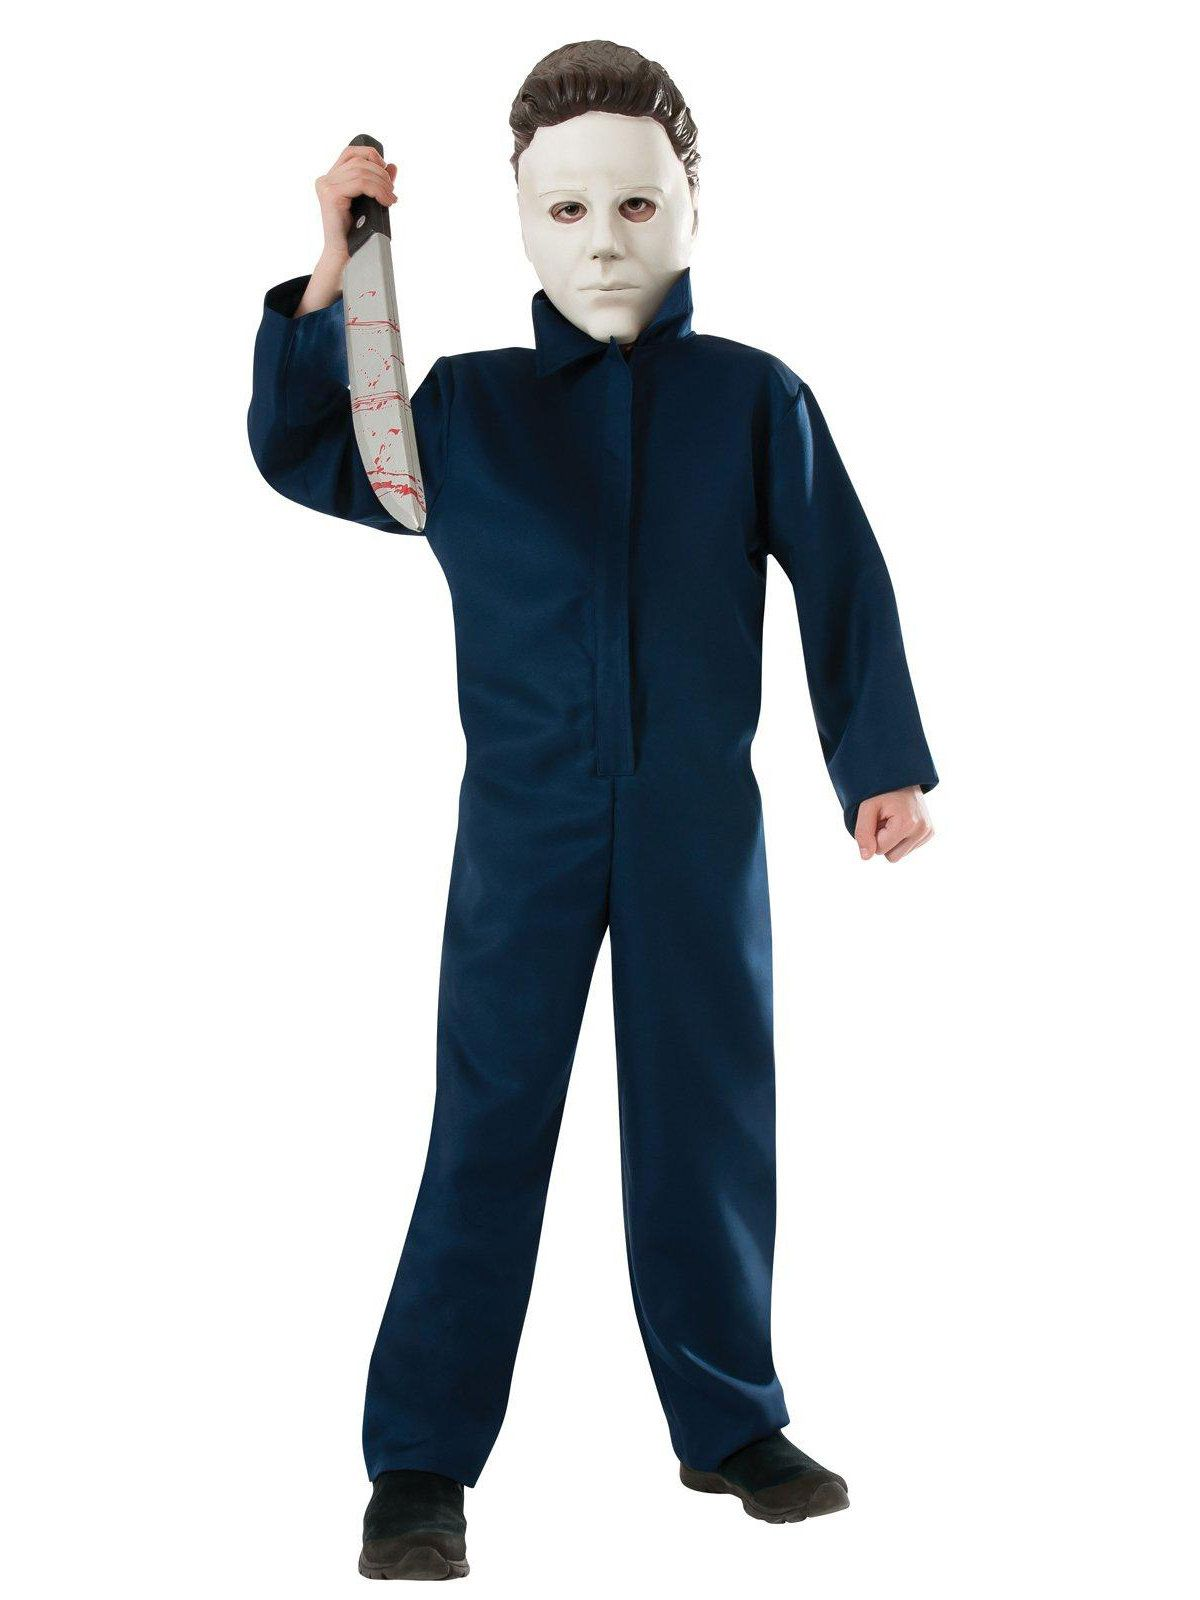 Halloween Costumes For Kidsboys.Halloween Michael Myers Costume For Children Boys Costumes